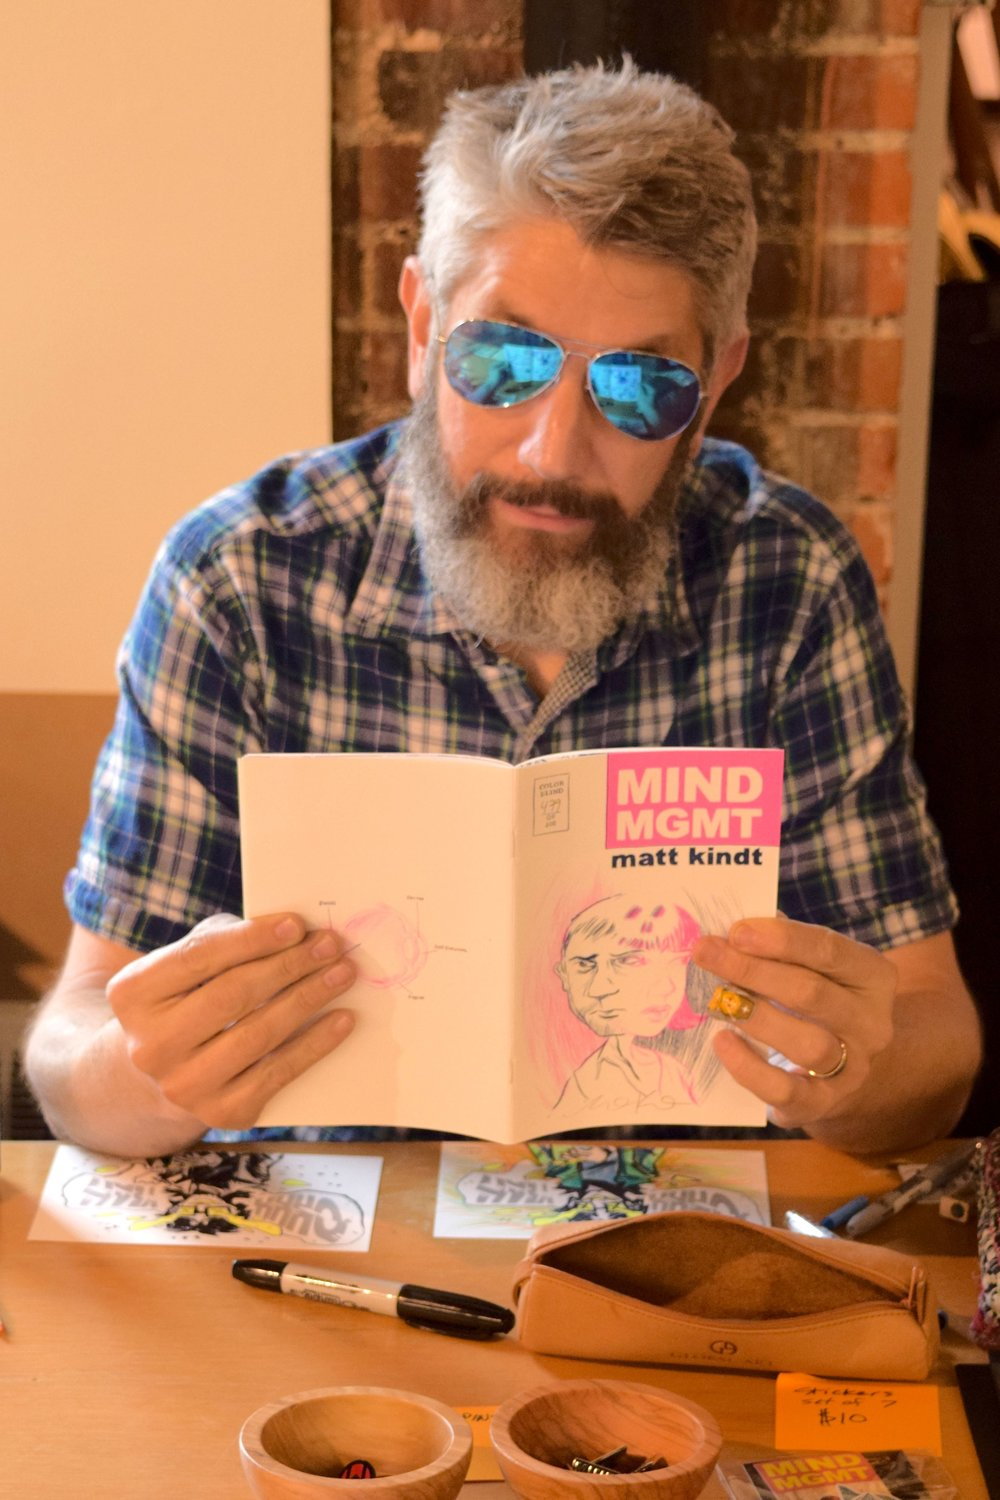 Matt Kindt at DINK 2018.